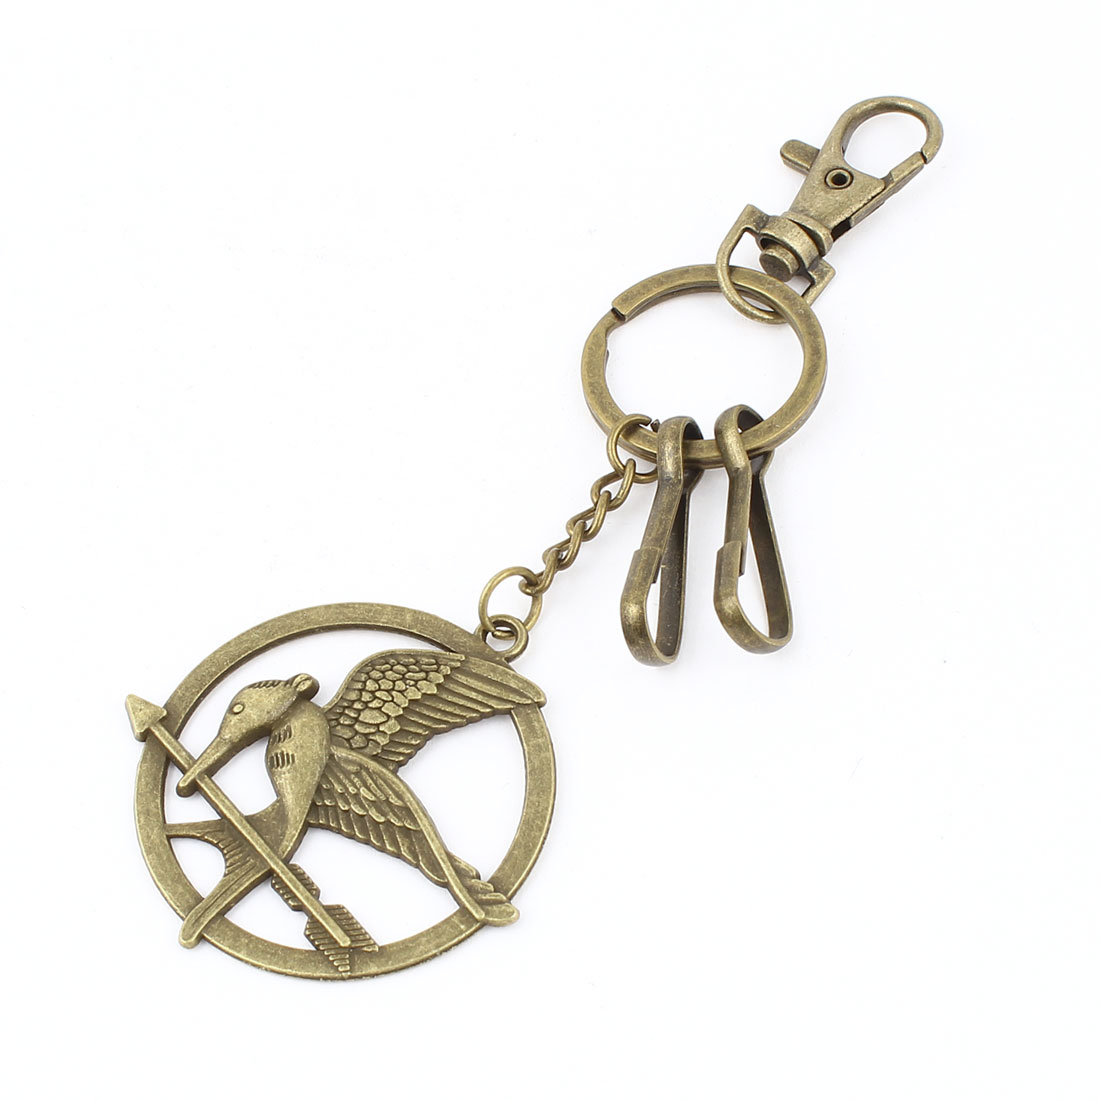 Bronze Tone Eagle Design Pendant Lobster Clasp Metal Split Ring Keychain Keyring Decor